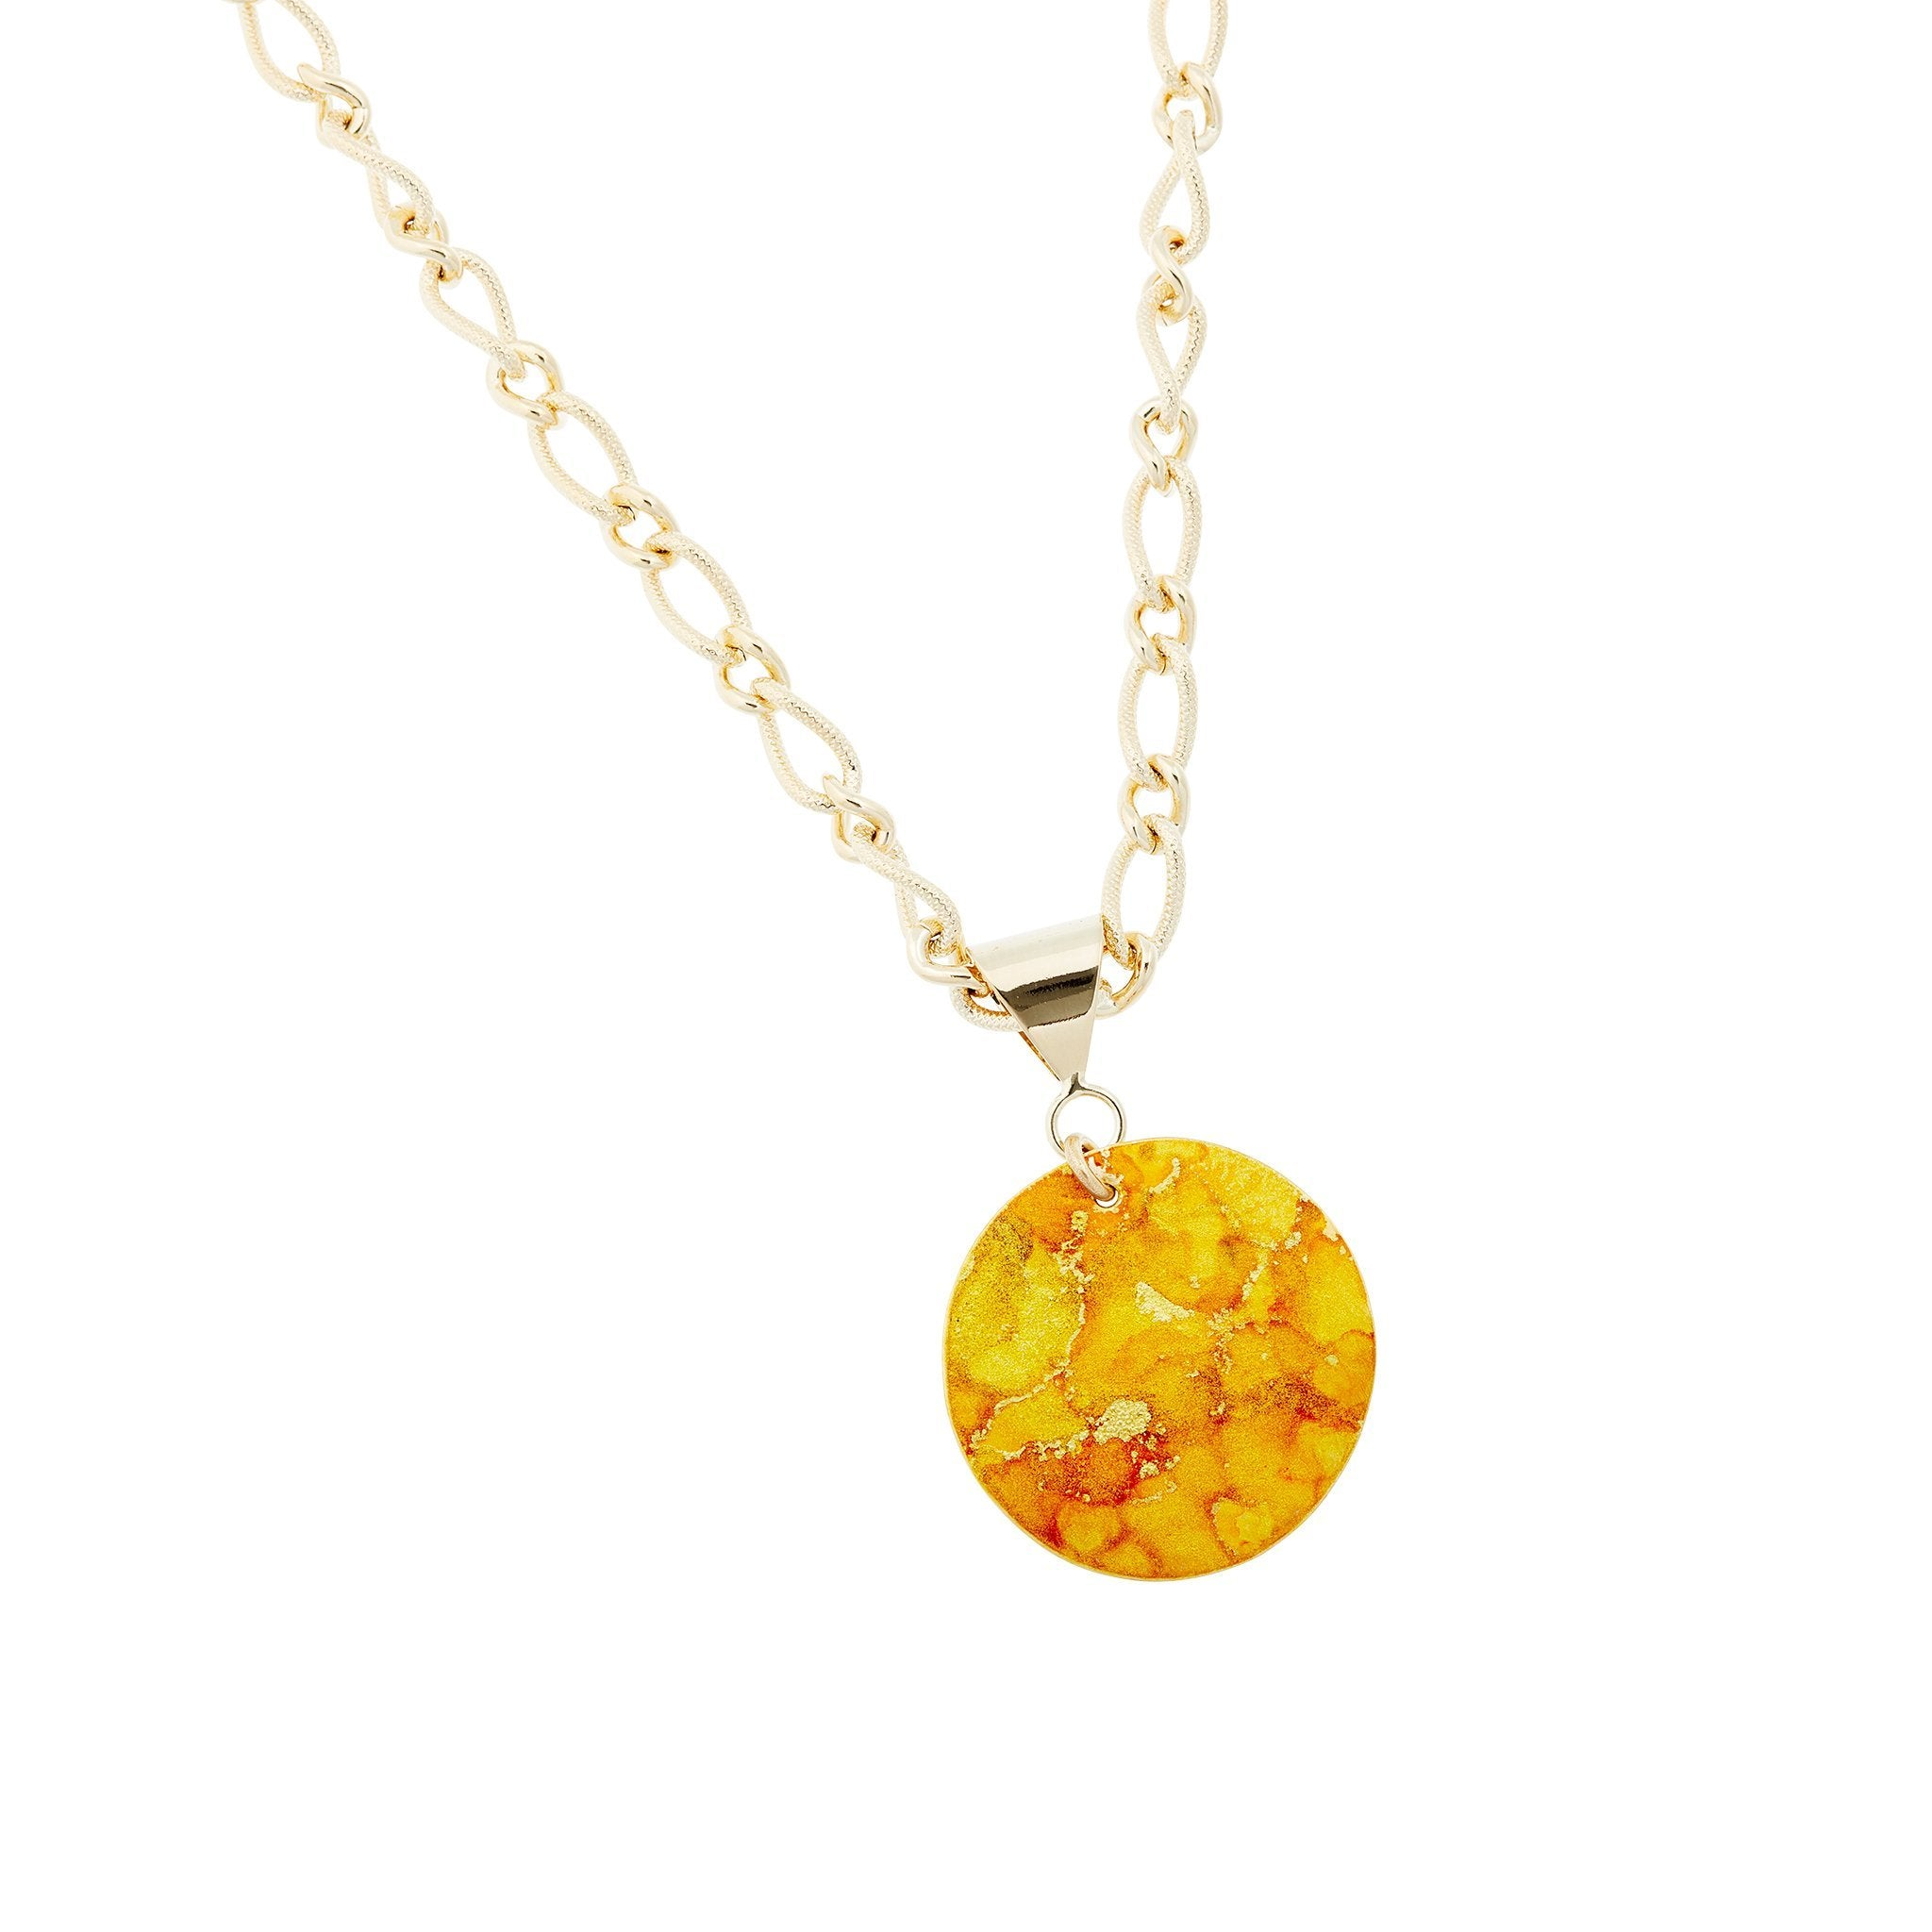 Gold Bold Pendant Necklace - Available in More Colors